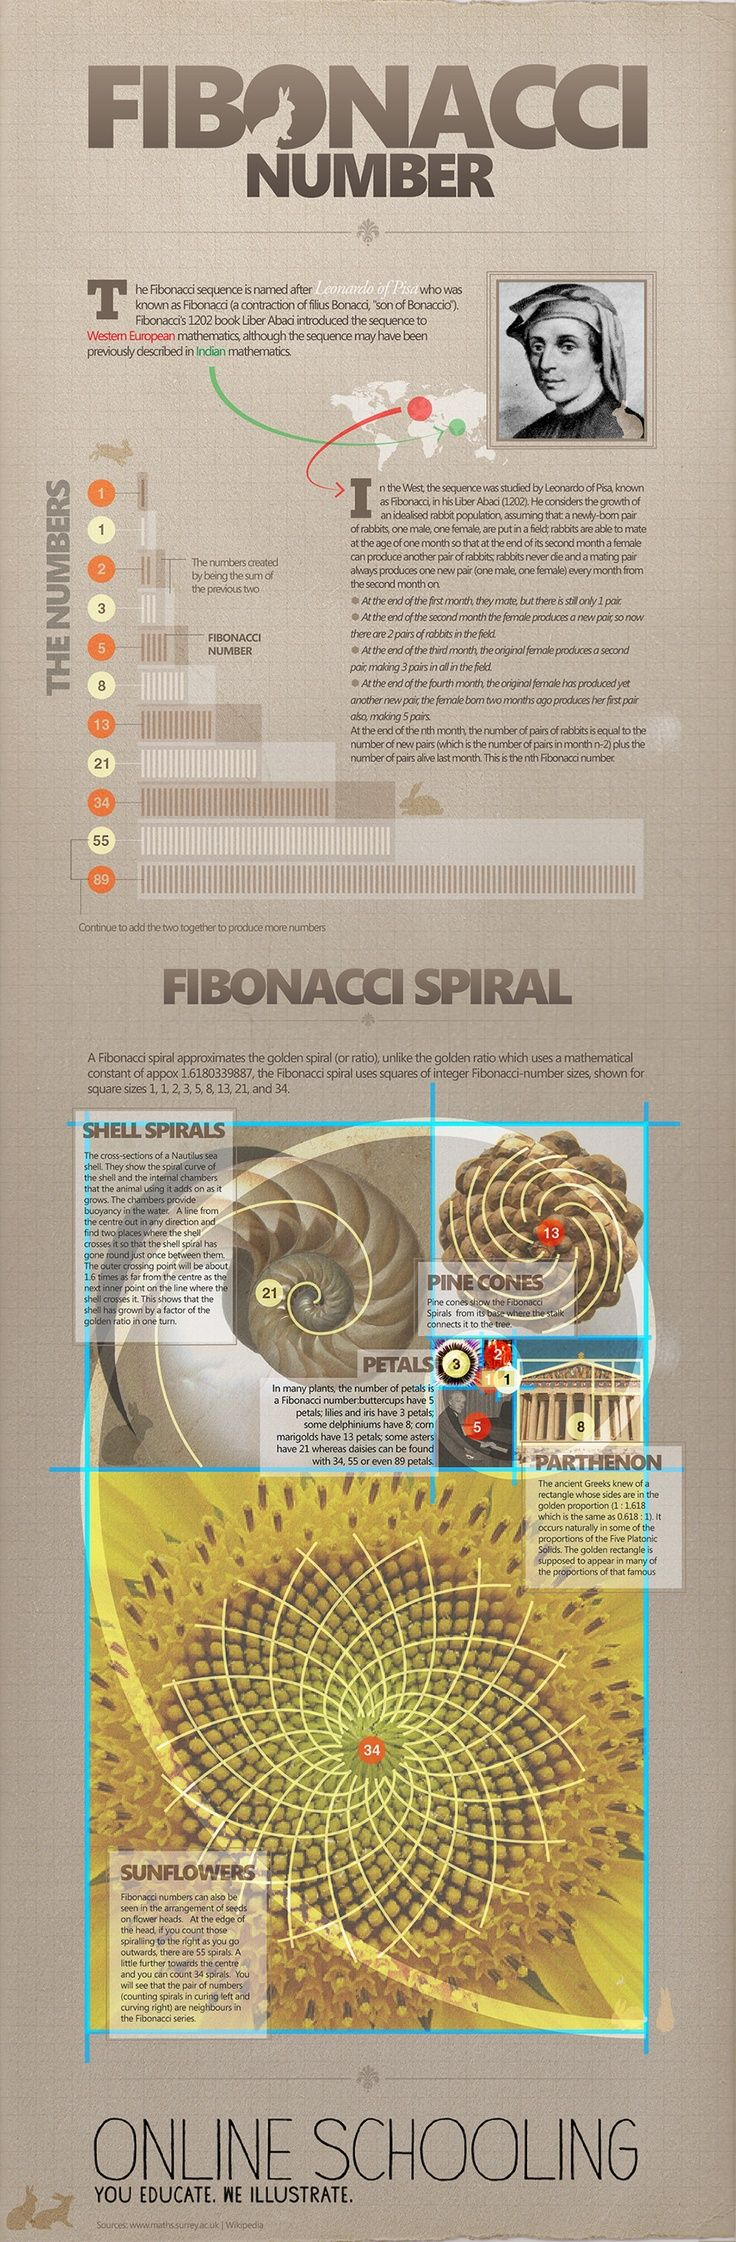 best images about fibonacci golden shape fibonacci sequence sacred geometry mathematicians fern hunt ph d research mathematician at the national institute of standards and technology nist